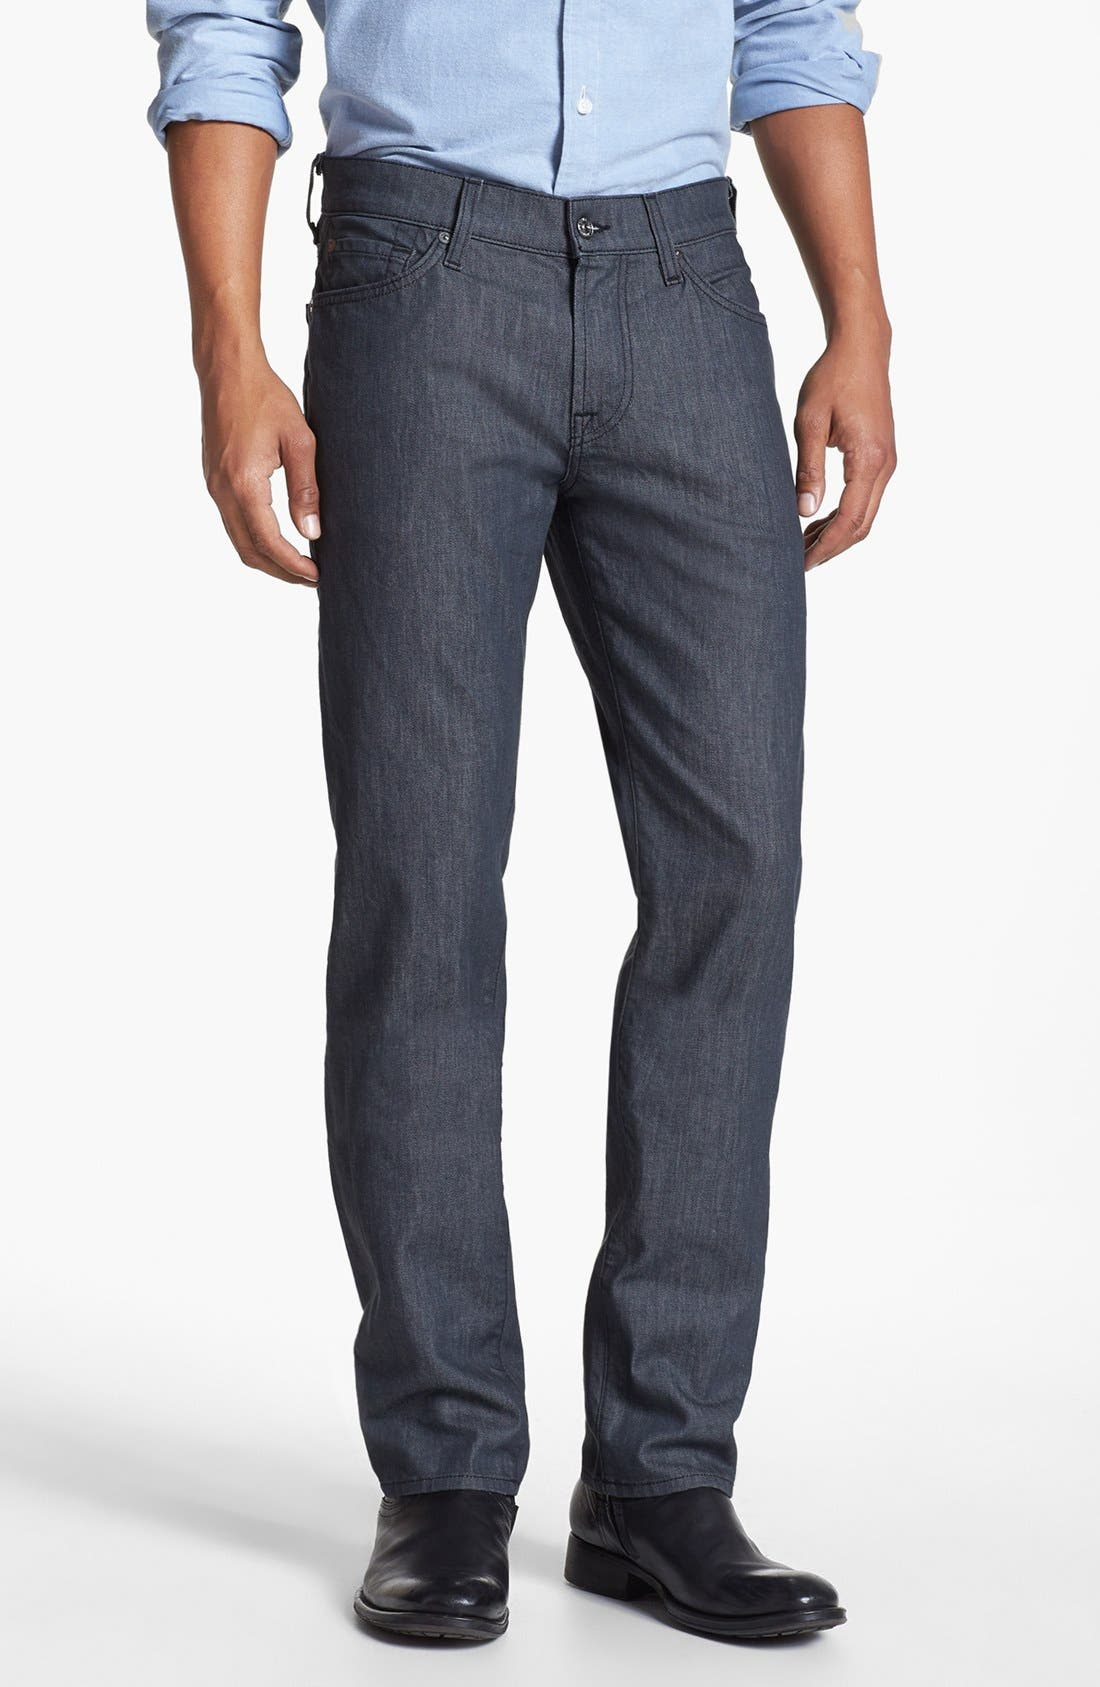 Alternate Image 1 Selected - 7 For All Mankind® 'Slimmy' Slim Straight Leg Jeans (Clean Grey)